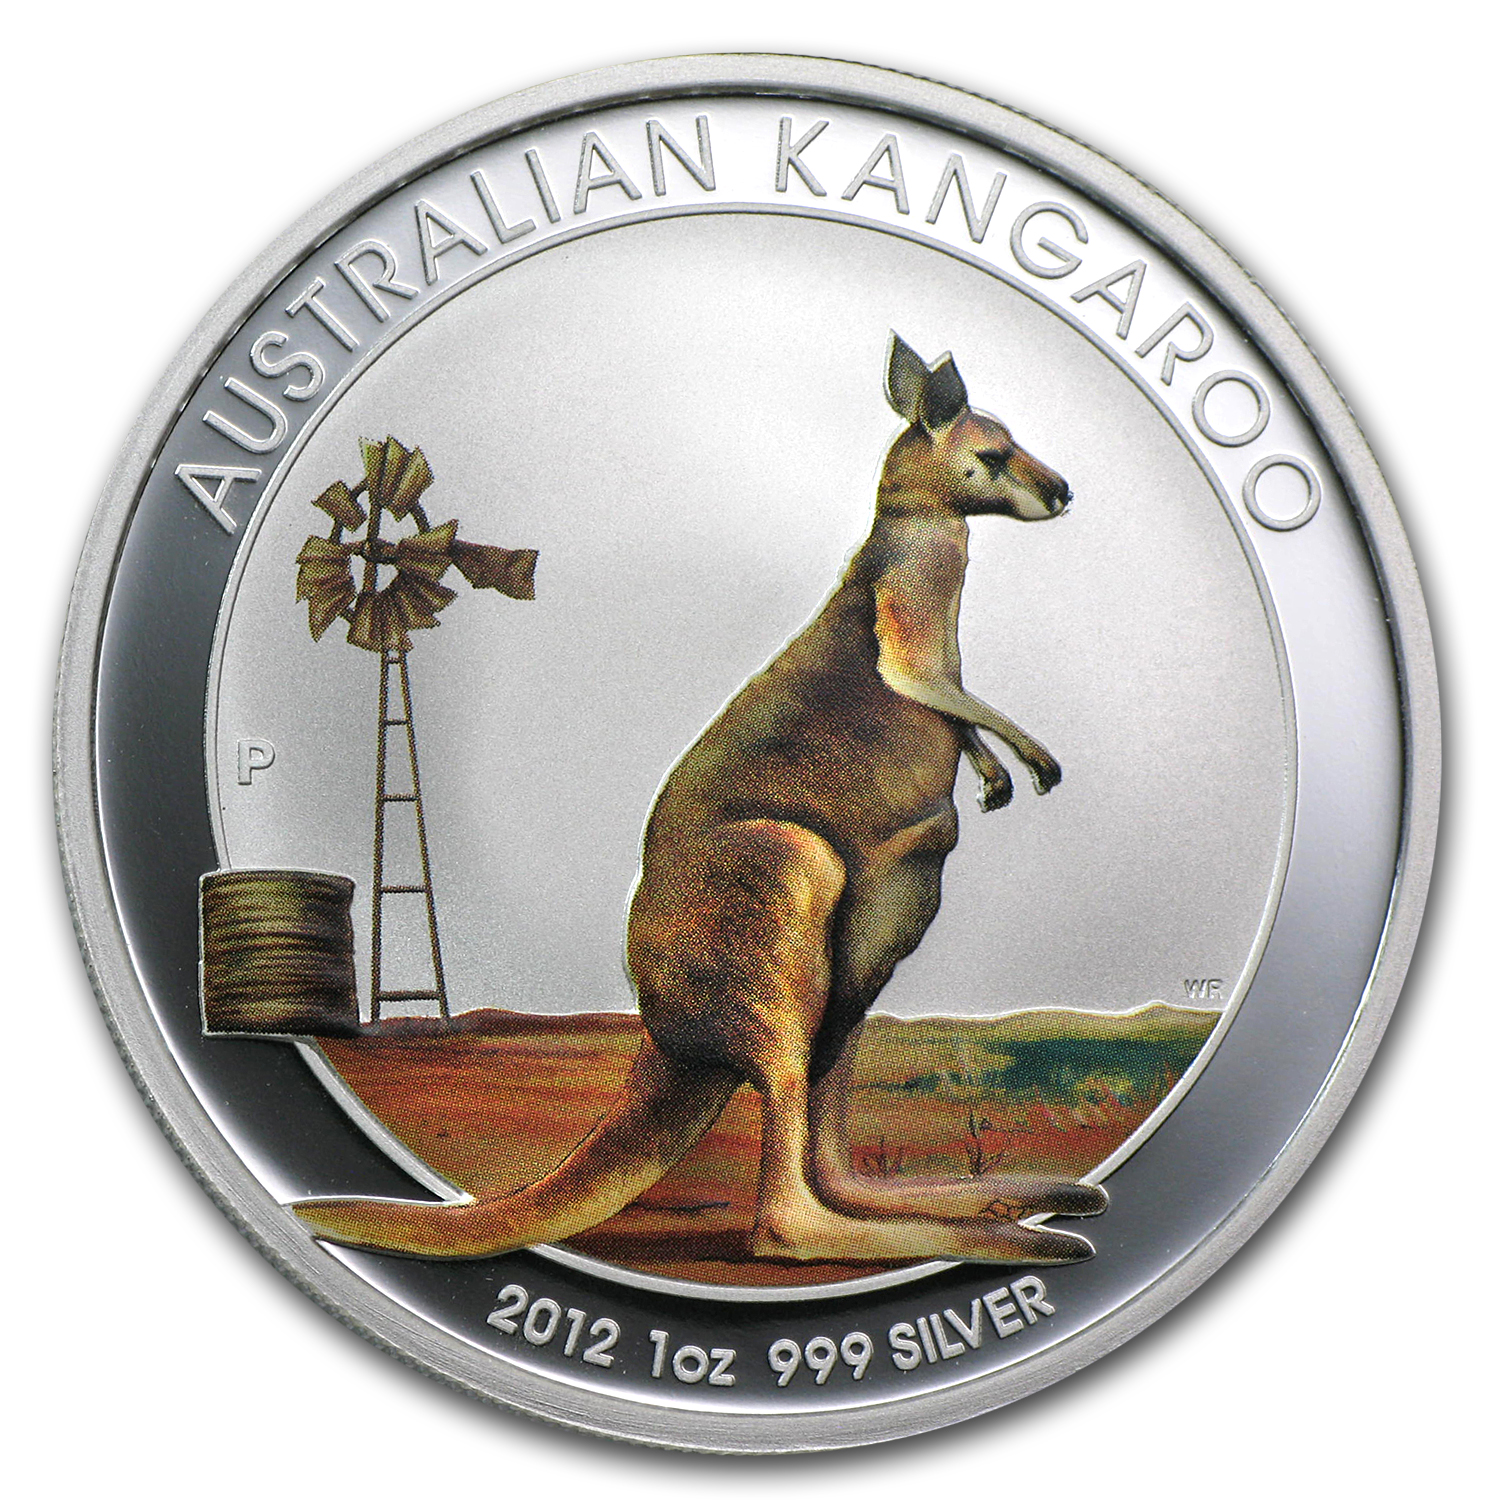 2012 1 oz Silver Colorized Kangaroo (Beijing Coin Expo)